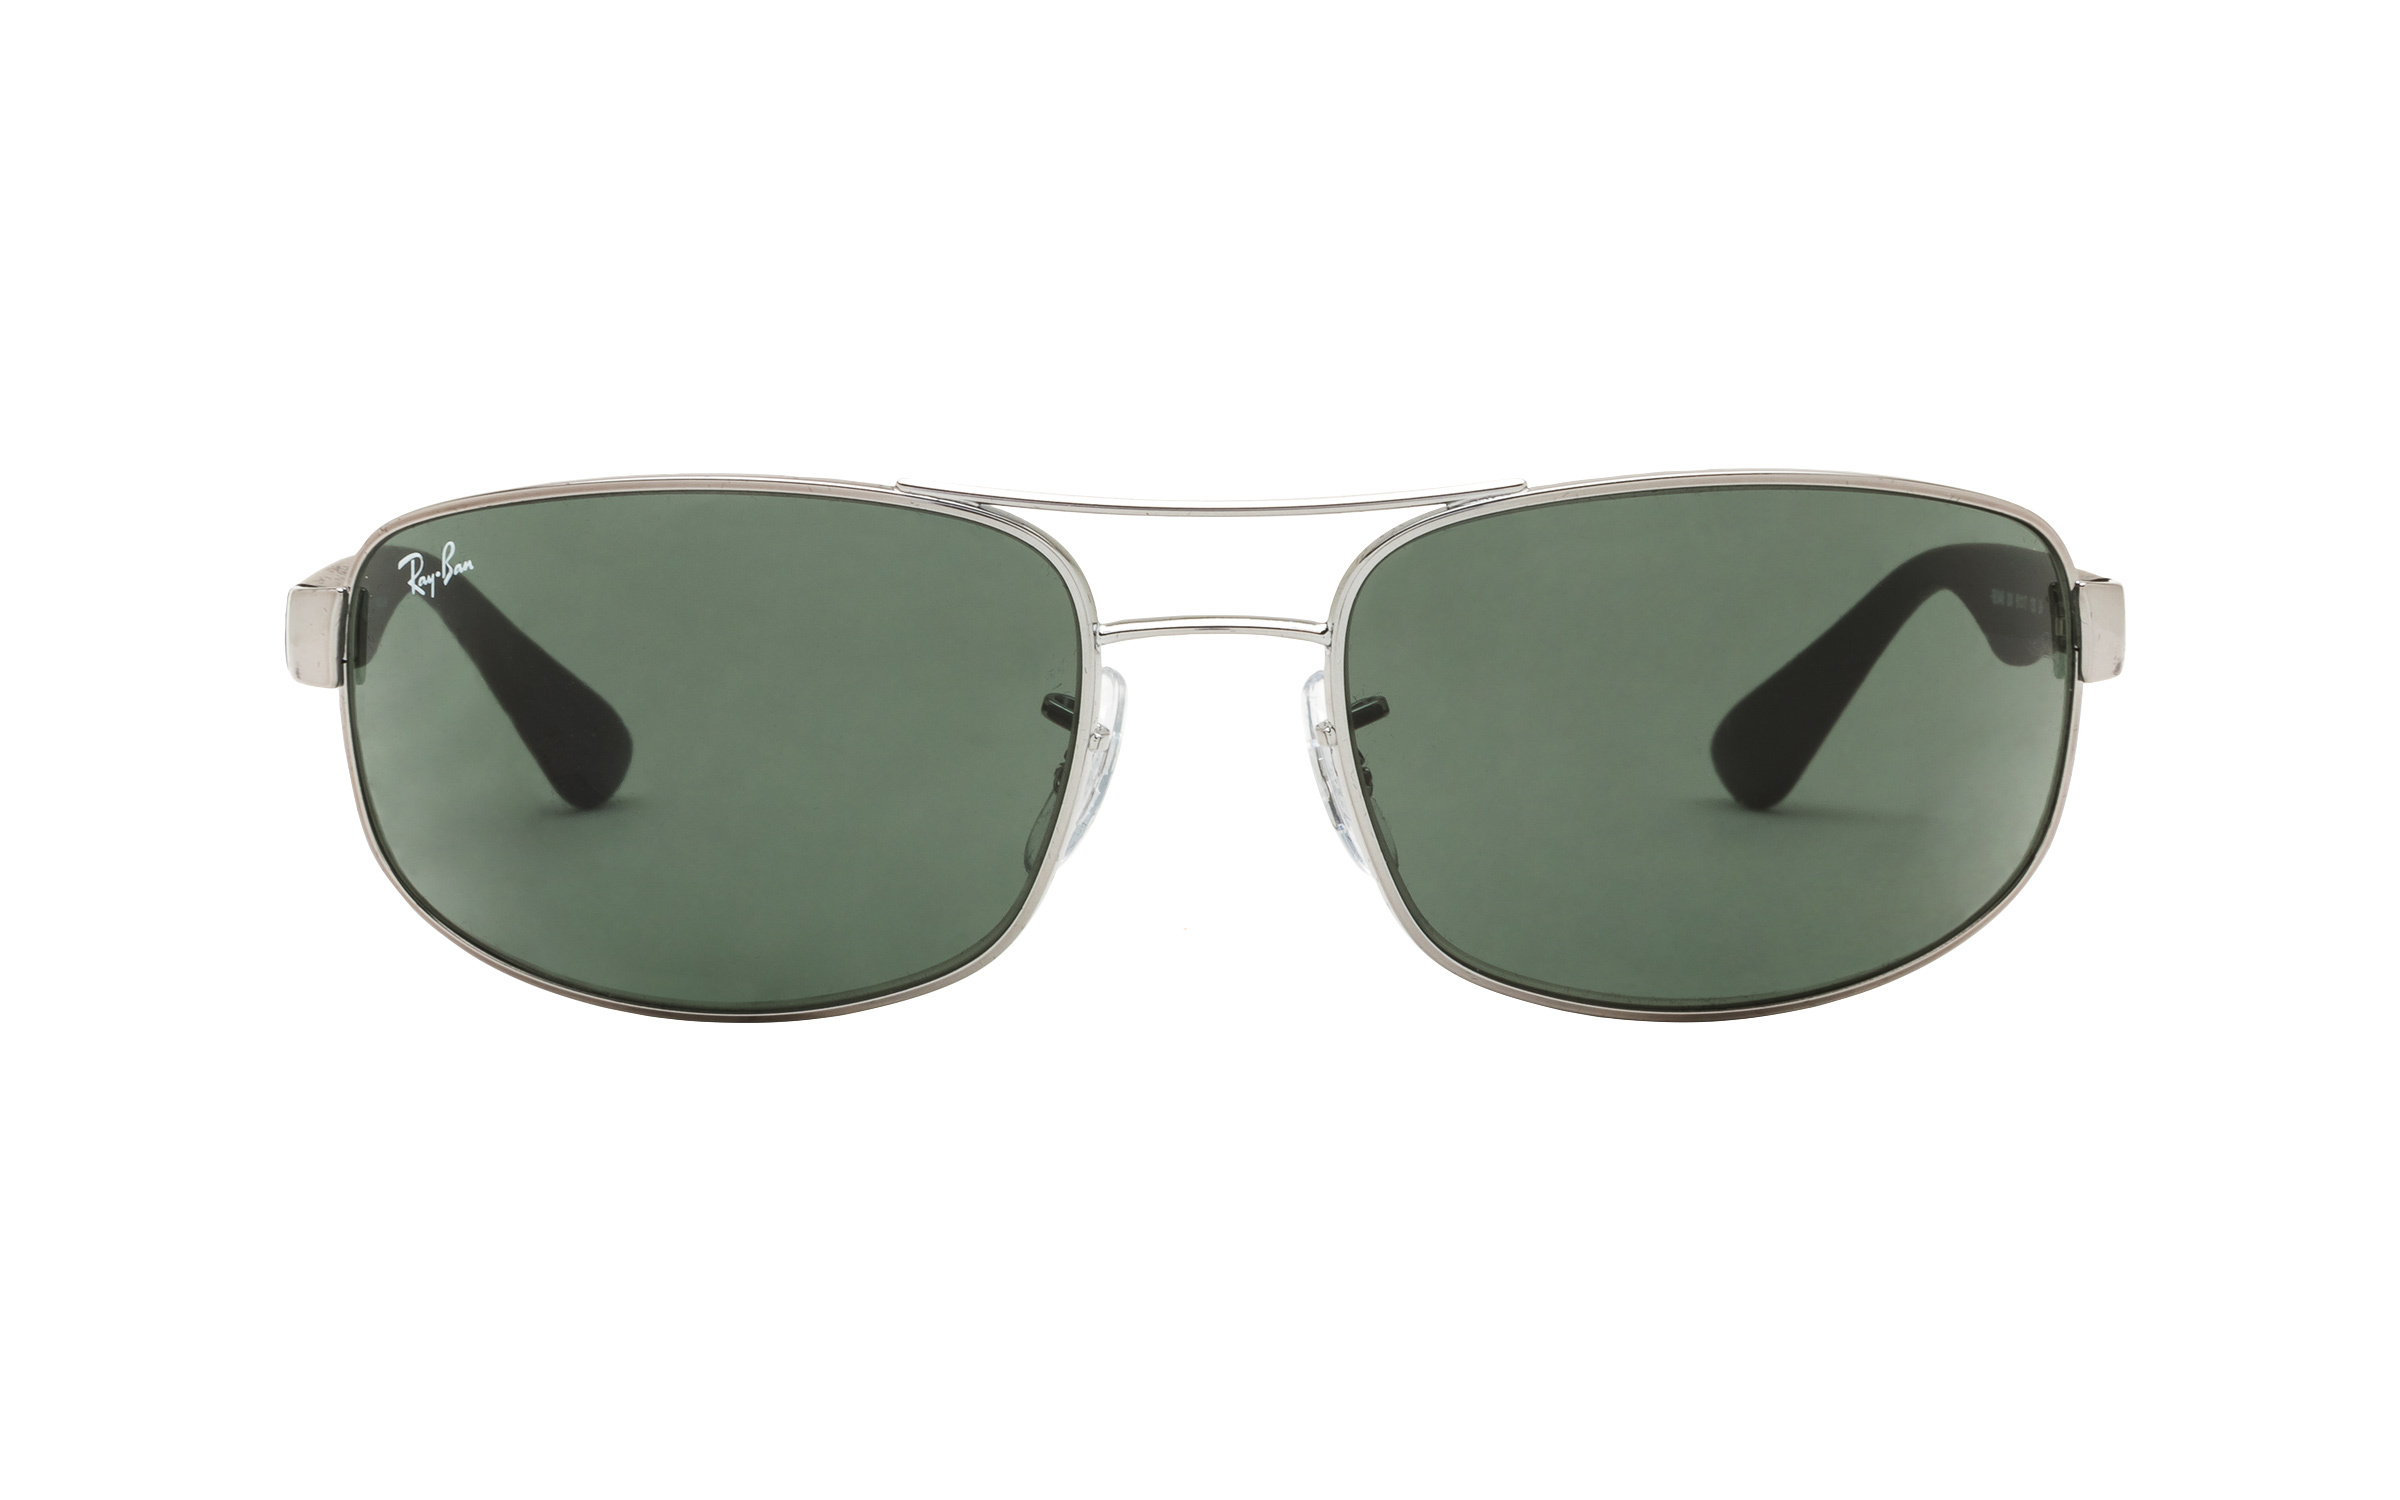 Ray-Ban RB3445 004 61 Sunglasses in Gunmetal Grey/Silver | Acetate/Metal - Online Coastal